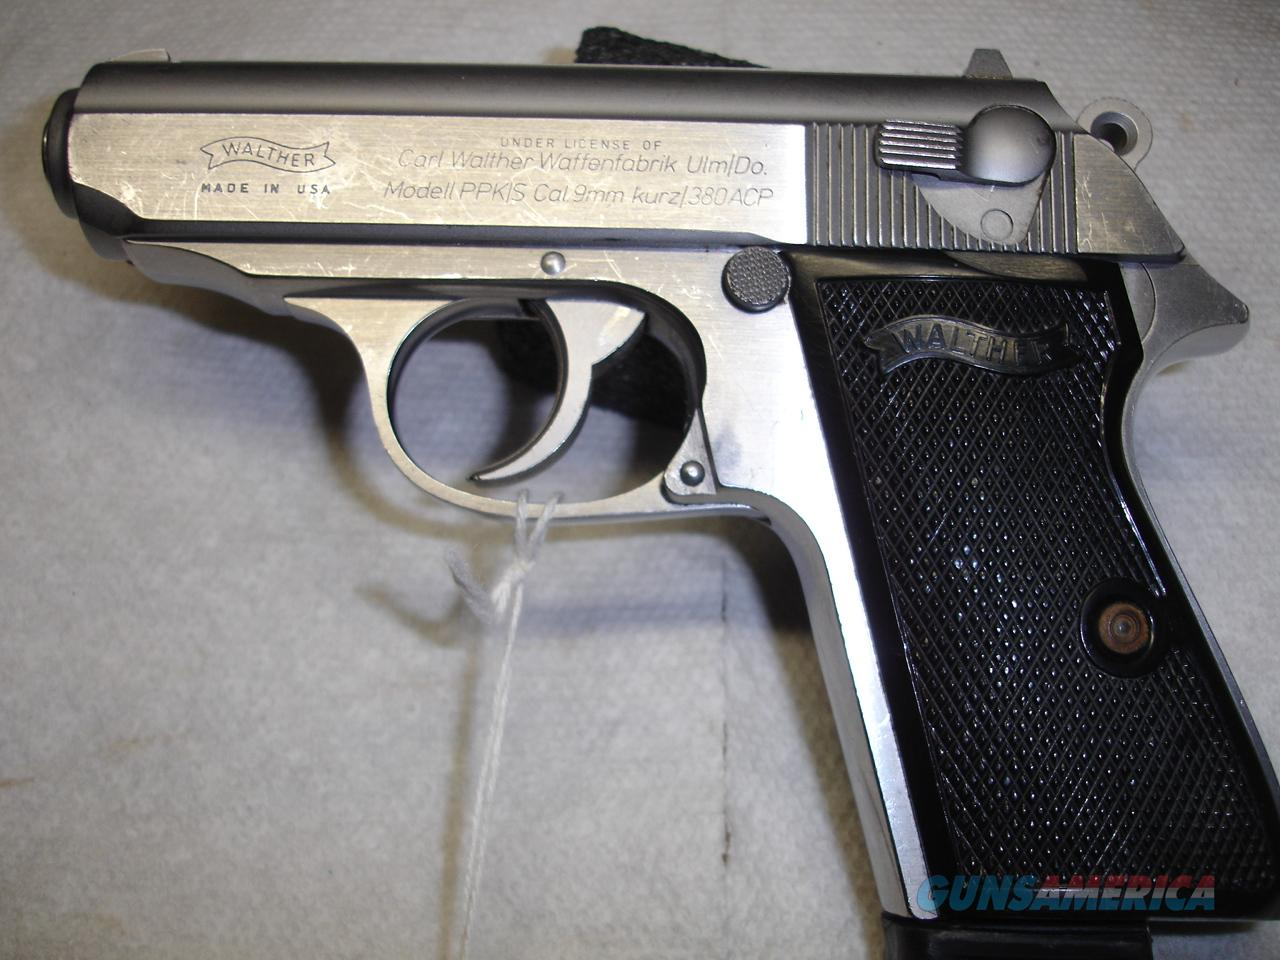 WALTHEER PPK/S  Guns > Pistols > Walther Pistols > Post WWII > PPS